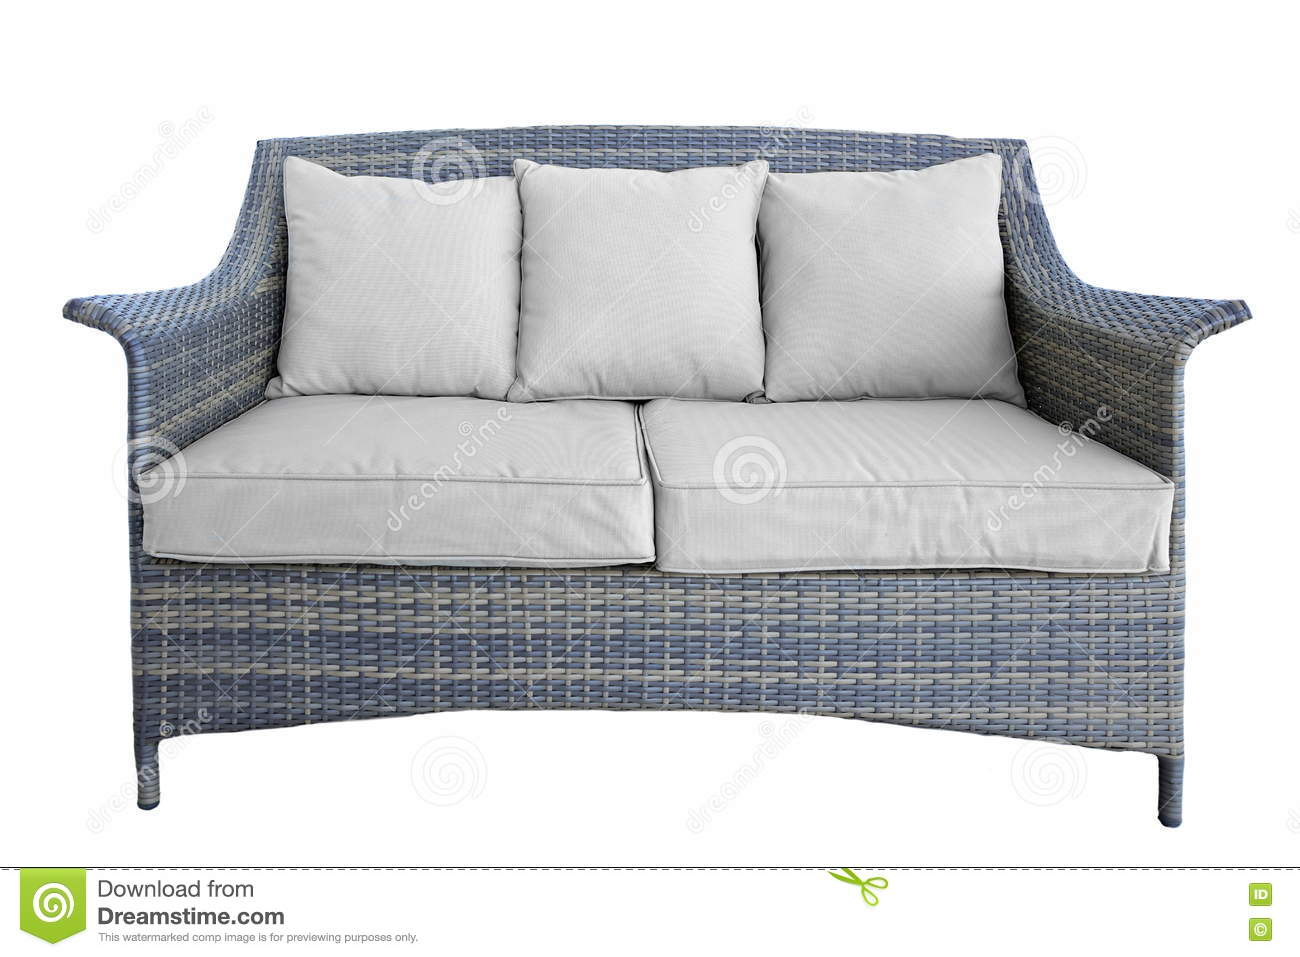 Outdoor Rattan Couch With Two Seat And Cushions White Isolated Stock Photo Image Of Dining Armrest 75365730